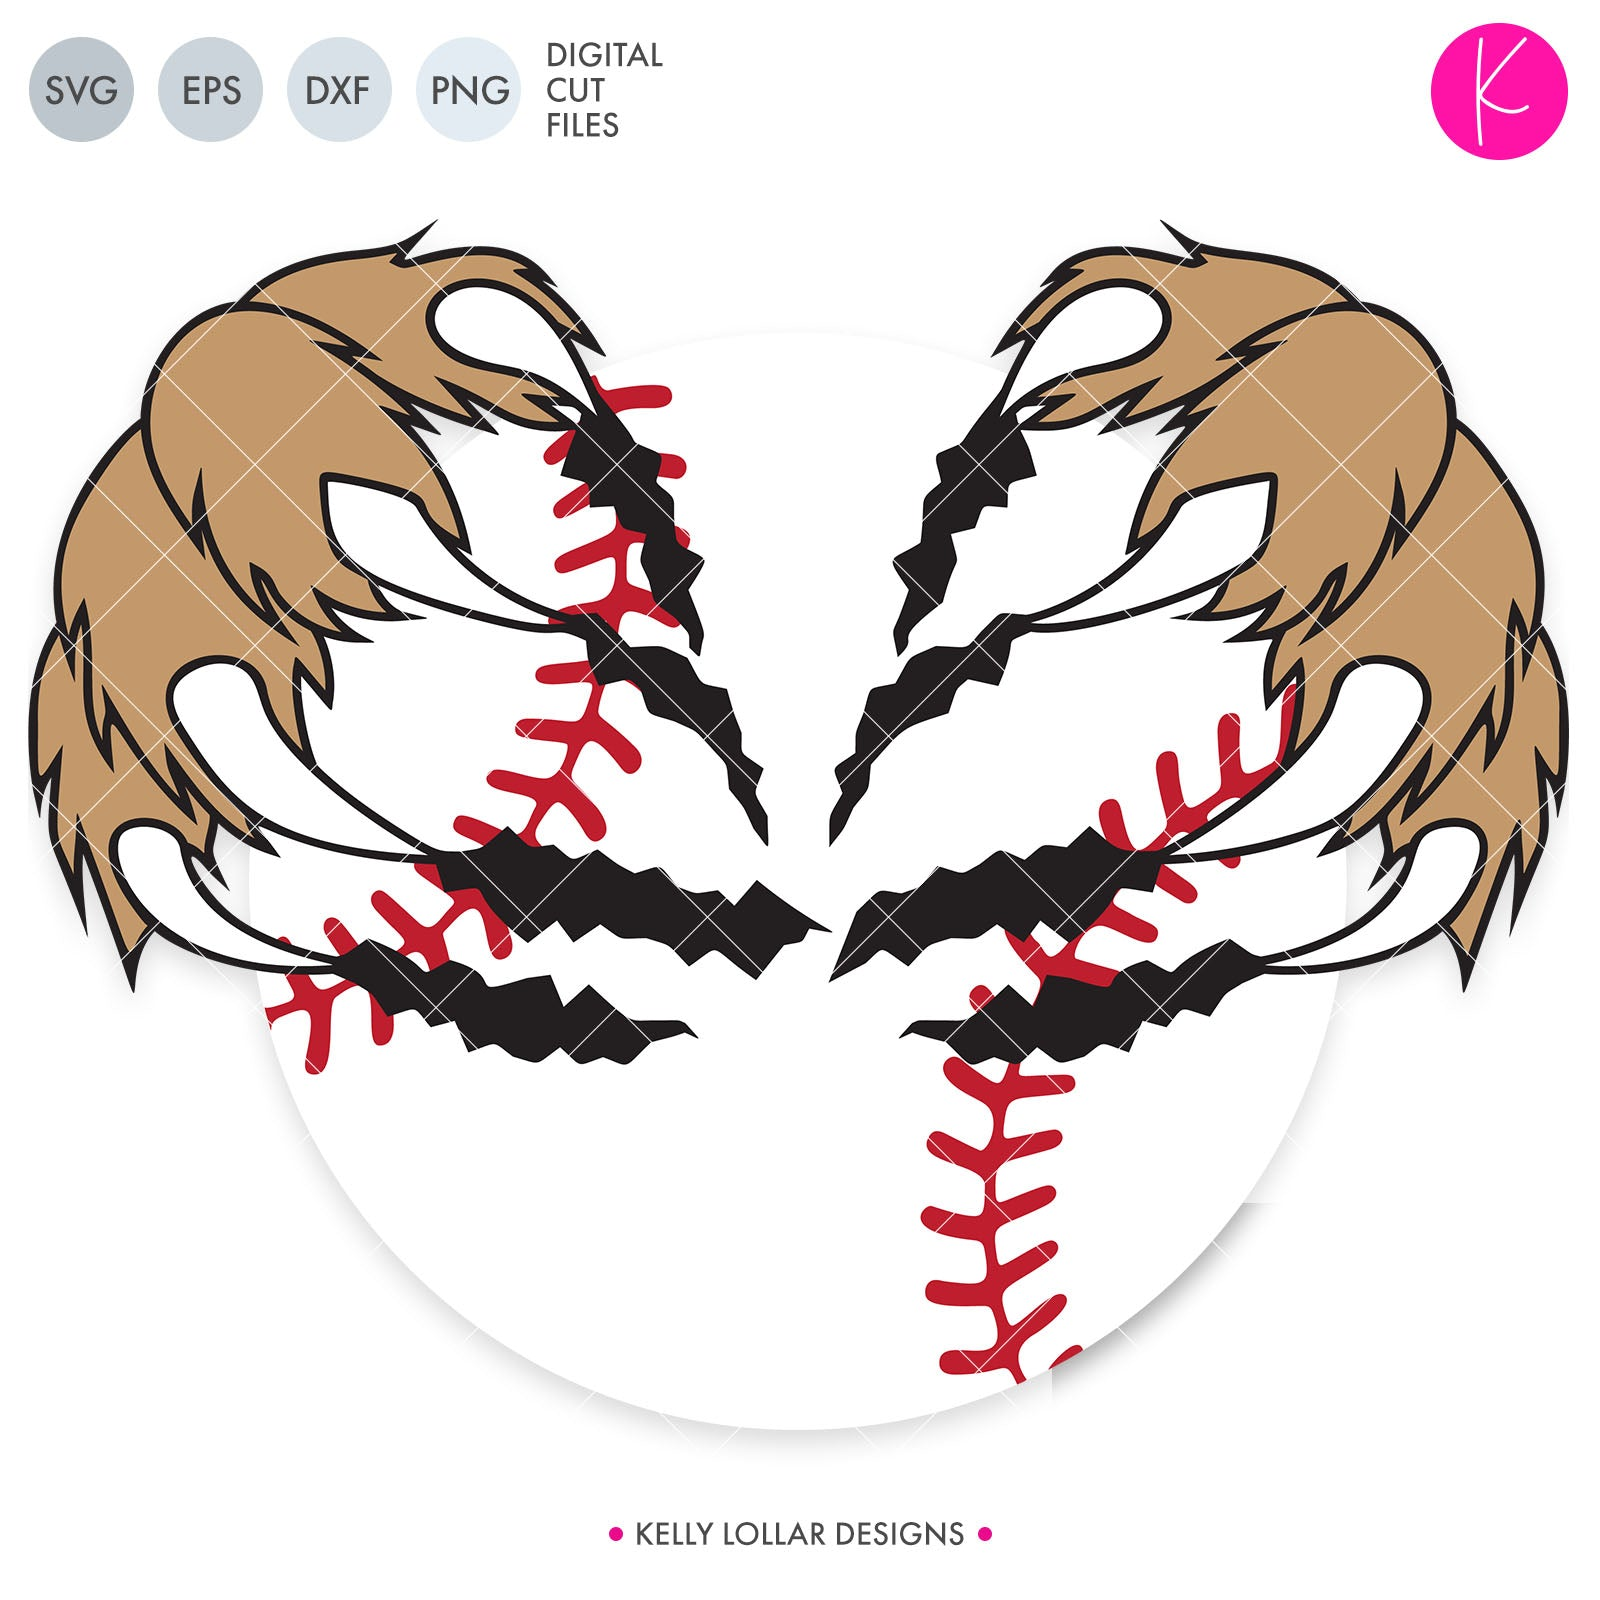 Baseball / Softball Claws | SVG DXF EPS PNG Cut Files Claws Ripping a Baseball or Softball for Tigers, Cougars, Panthers, Bears and More | SVG DXF PNG Cut Files 2 files for each format claws and ball attached version claws